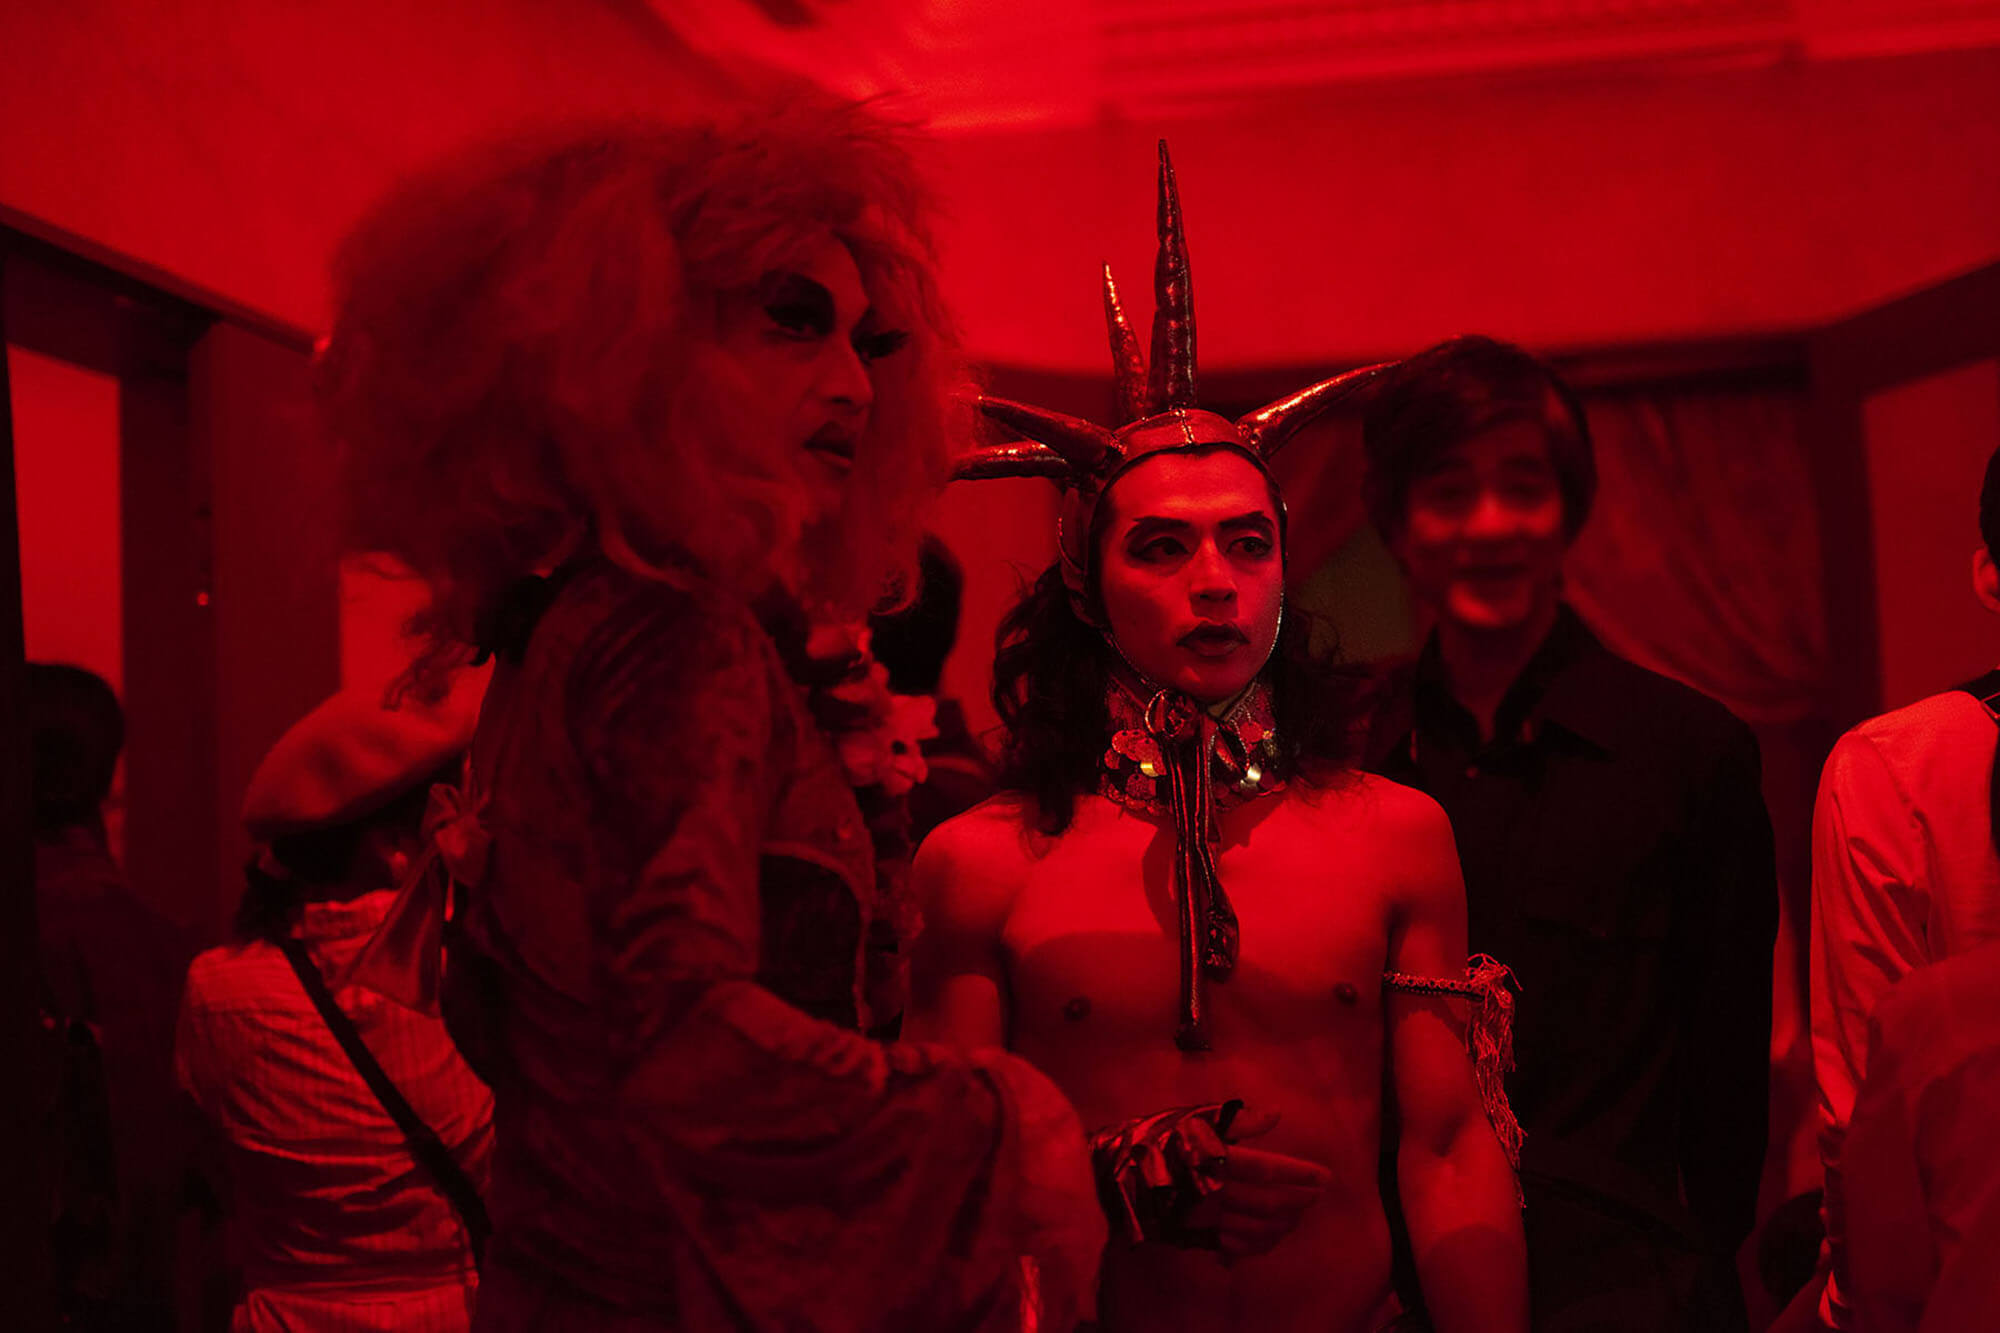 RED ROOM #3|offsociety inc. Red Room #3 現代美術・アート Contemporary Art